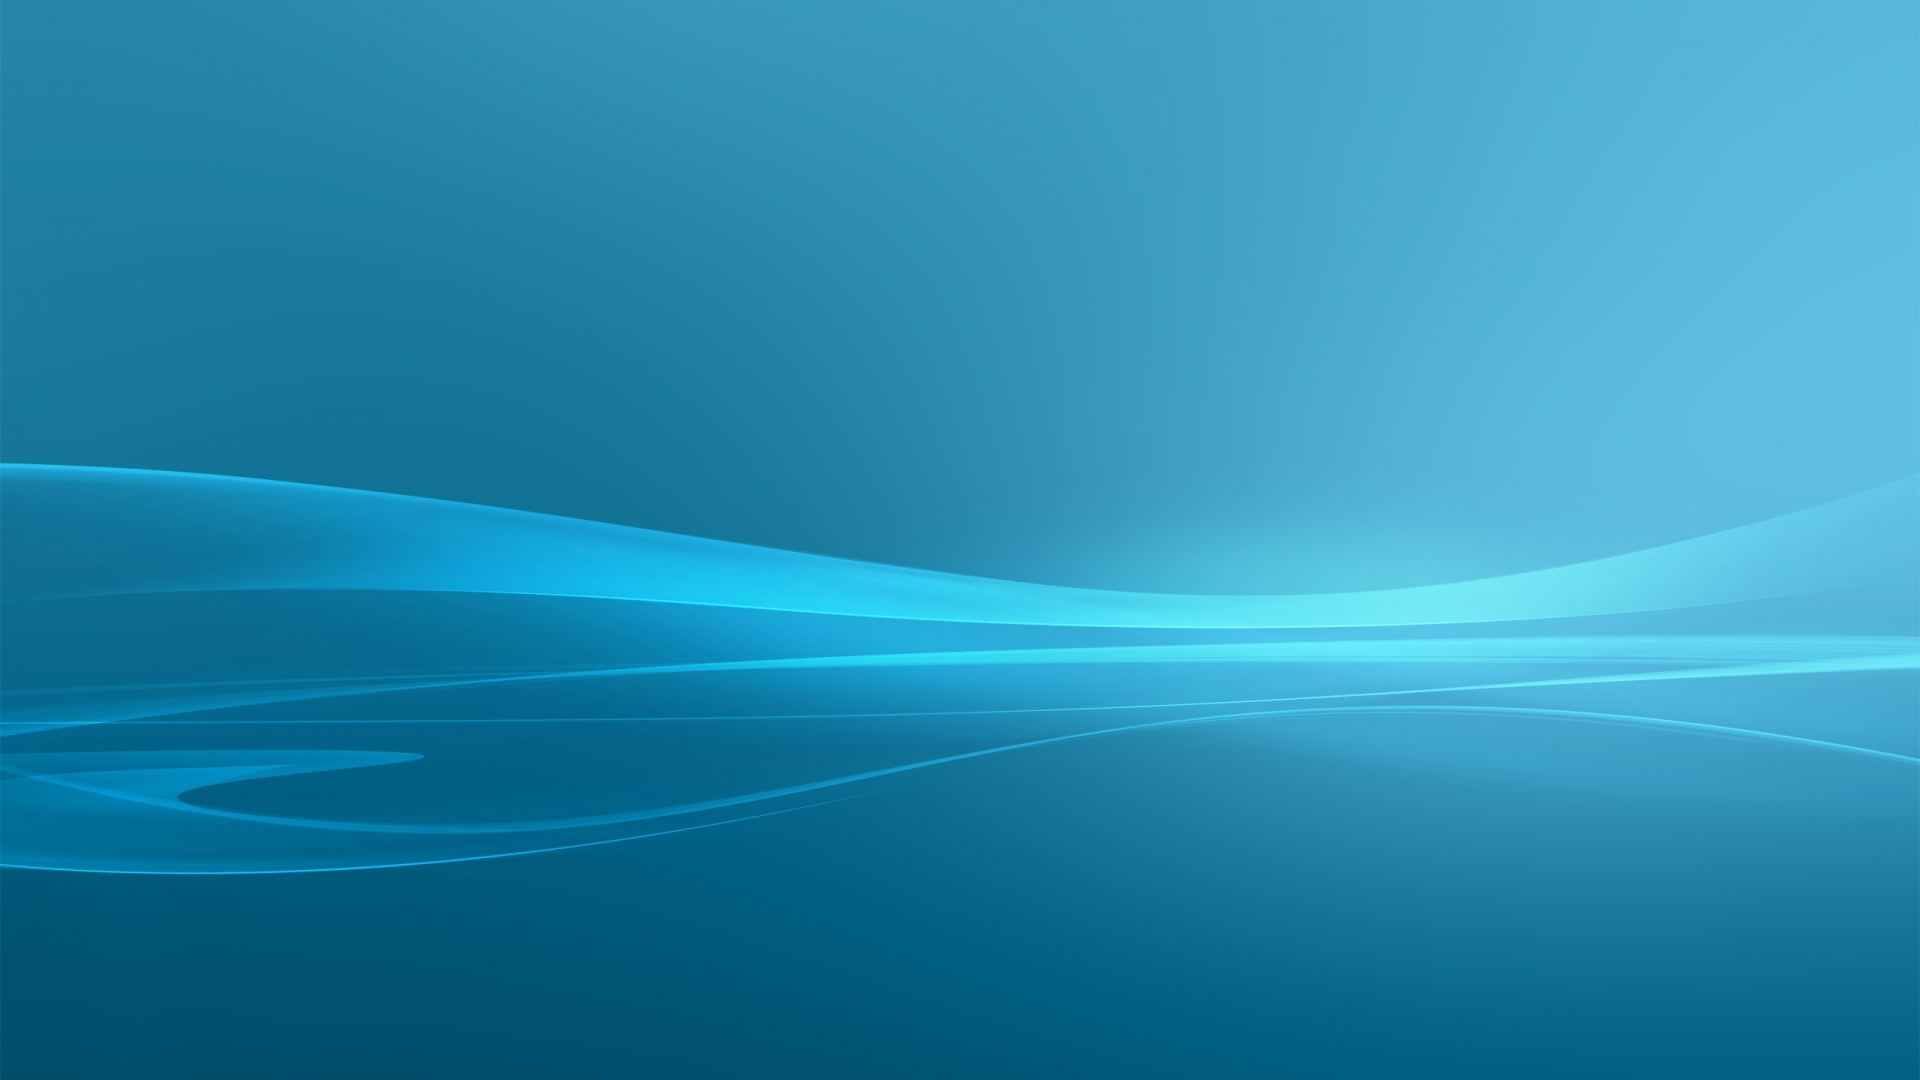 Get The Latest Lines Waves Blue News Pictures And Videos Learn All About From Wallpapers4uorg Your Wallpaper Source